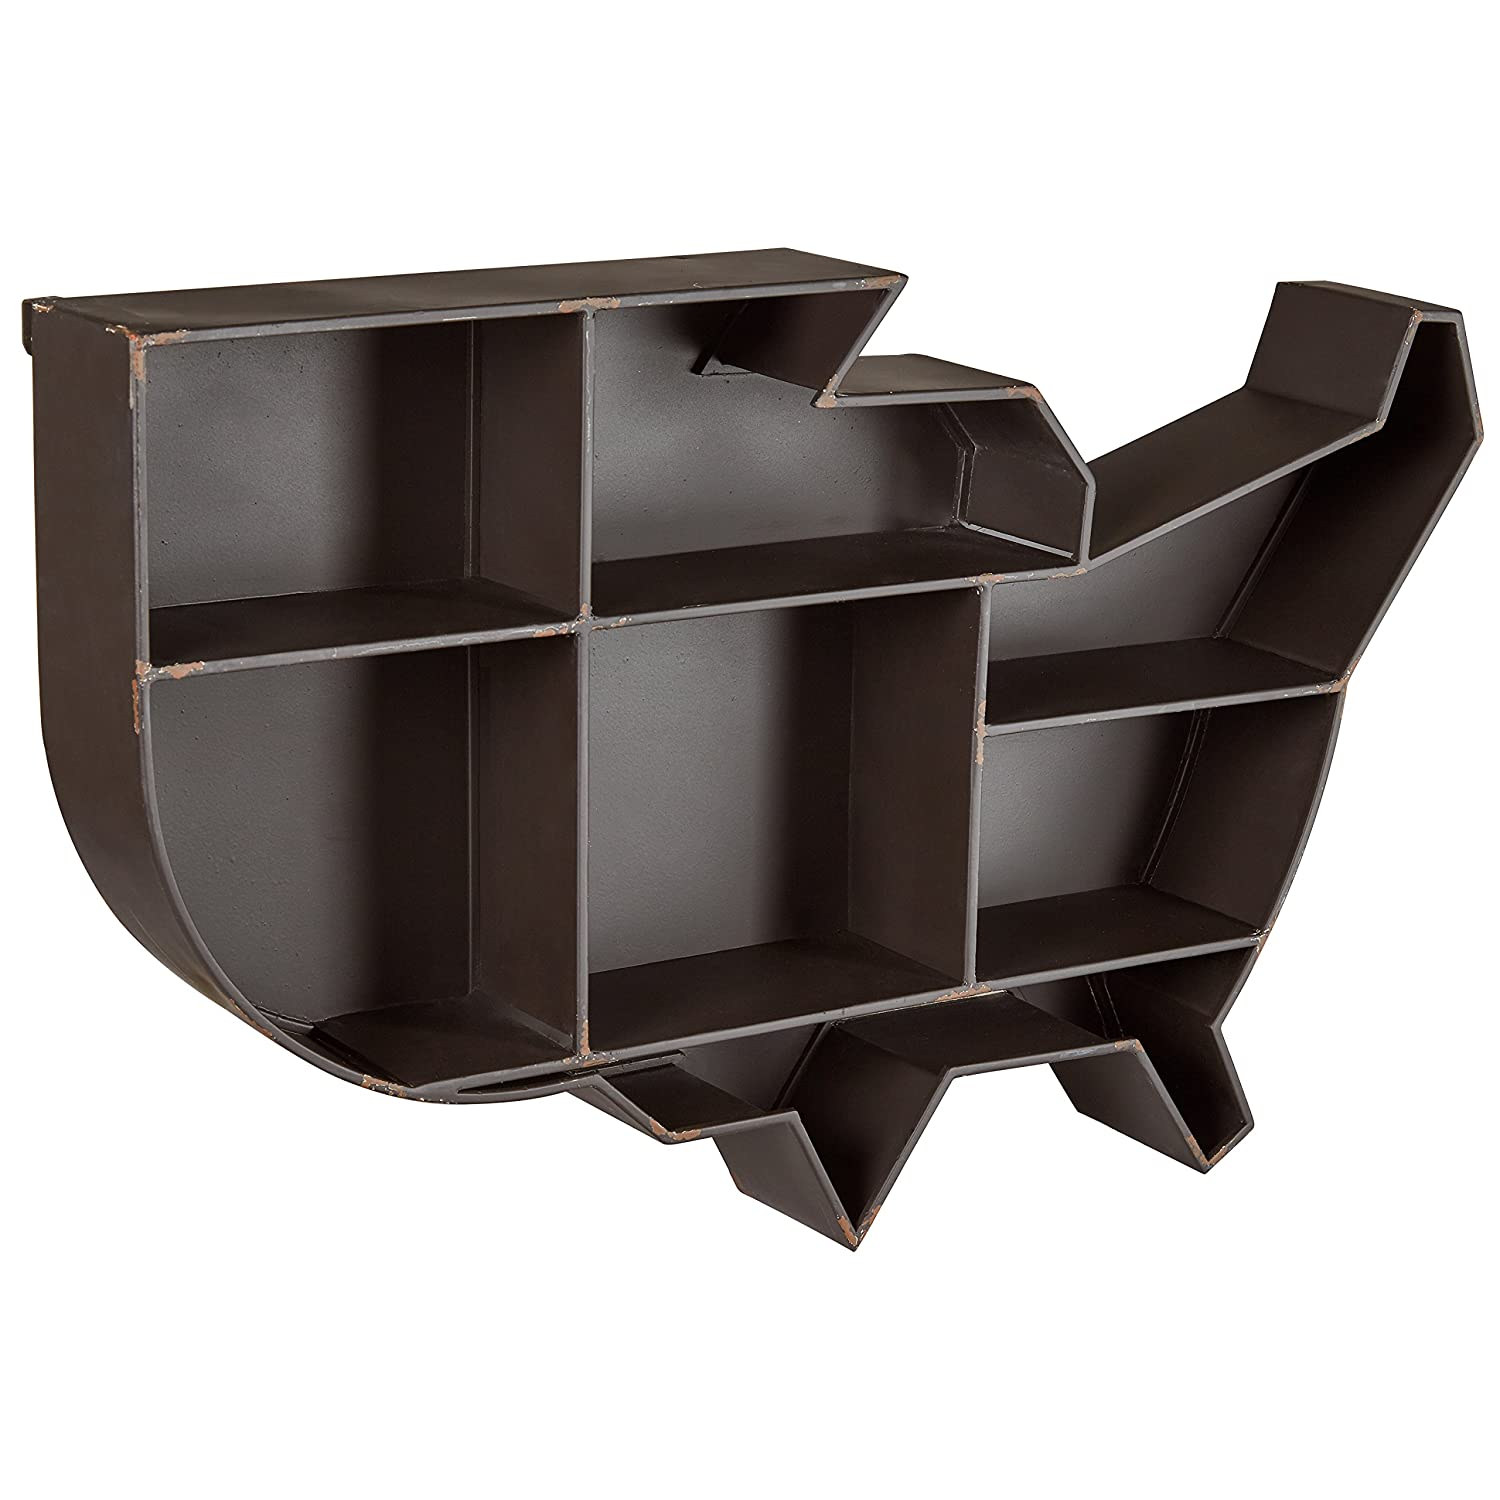 Stone Beam Contemporary United States Floating Wall Shelf – 28 x 18 x 4 Inch, Black Metal